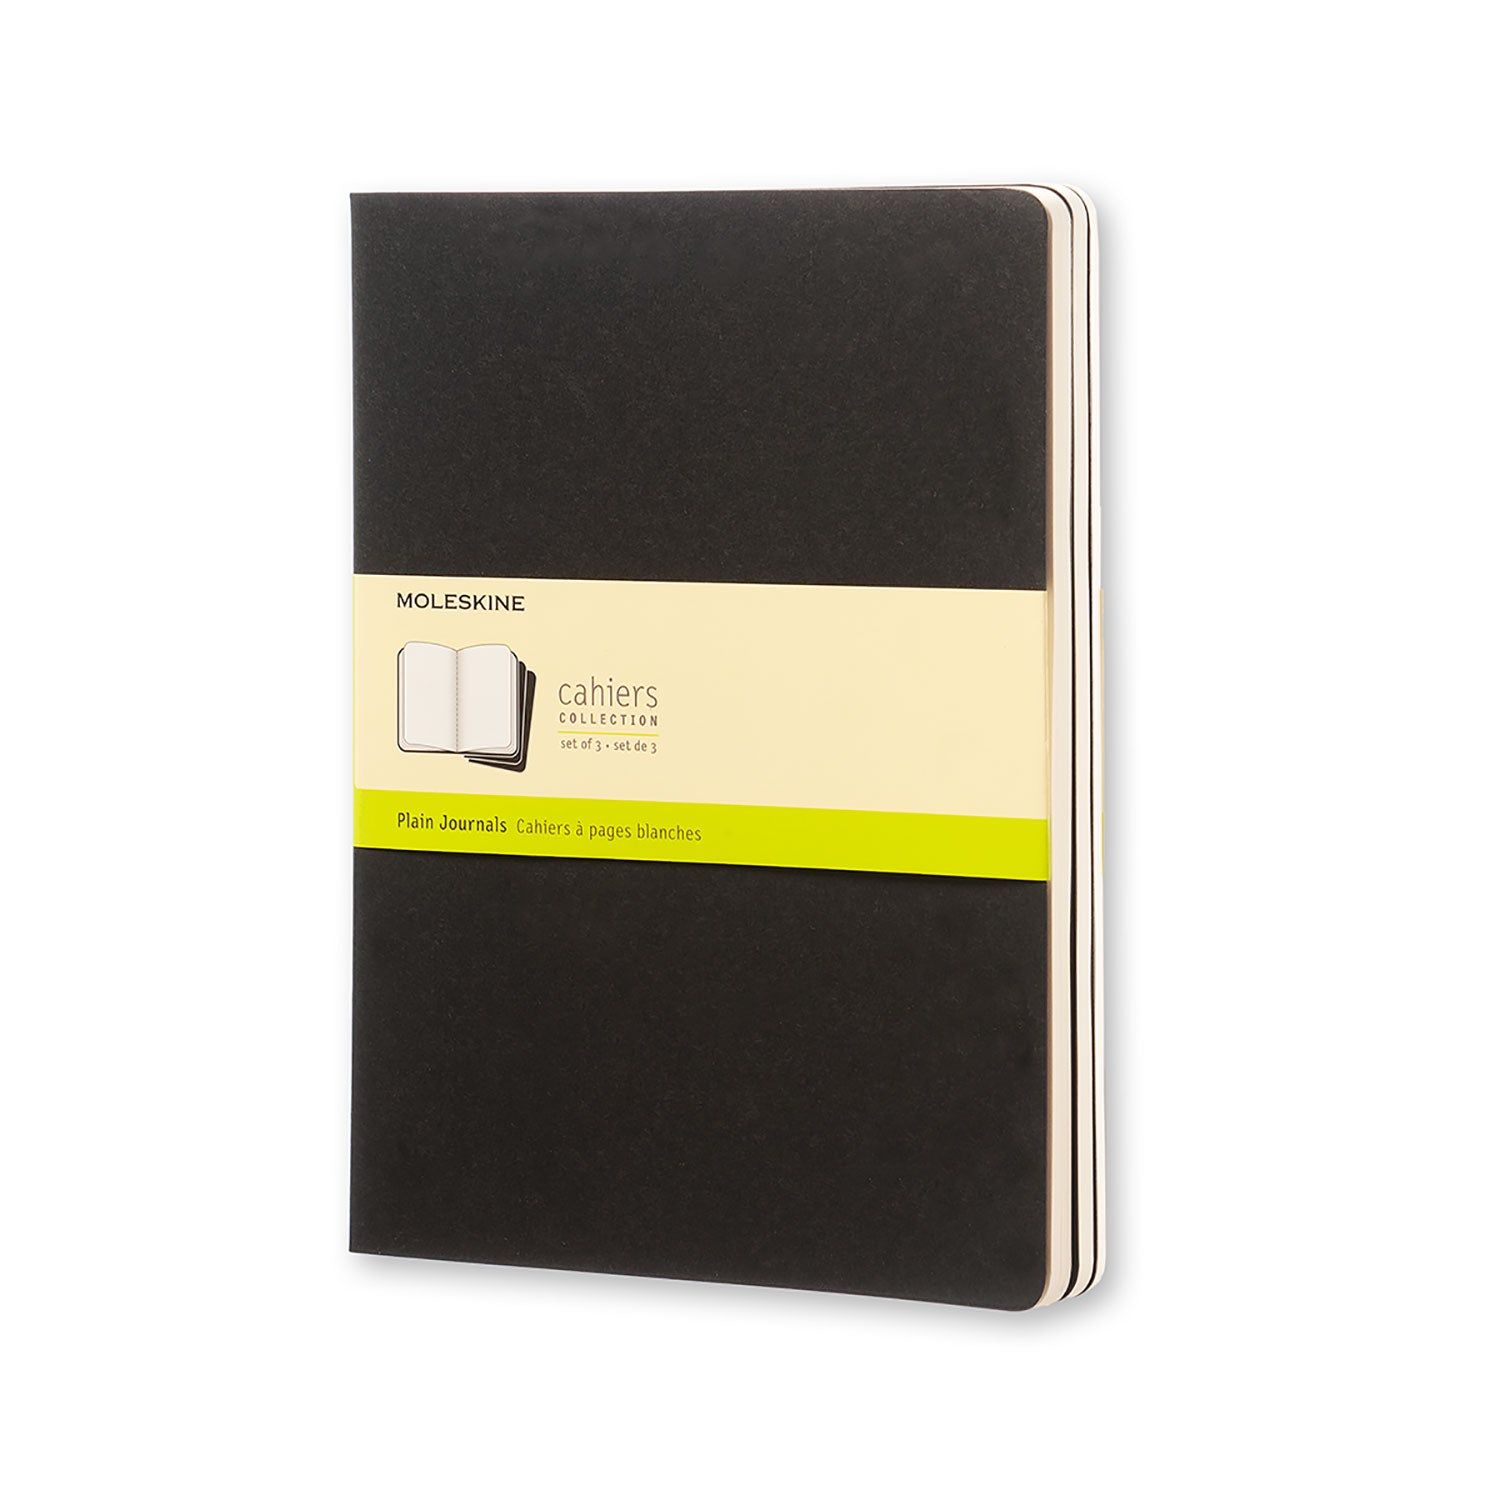 Moleskine Cahier Journal Black, Book, Chronicle Books - LIESAS